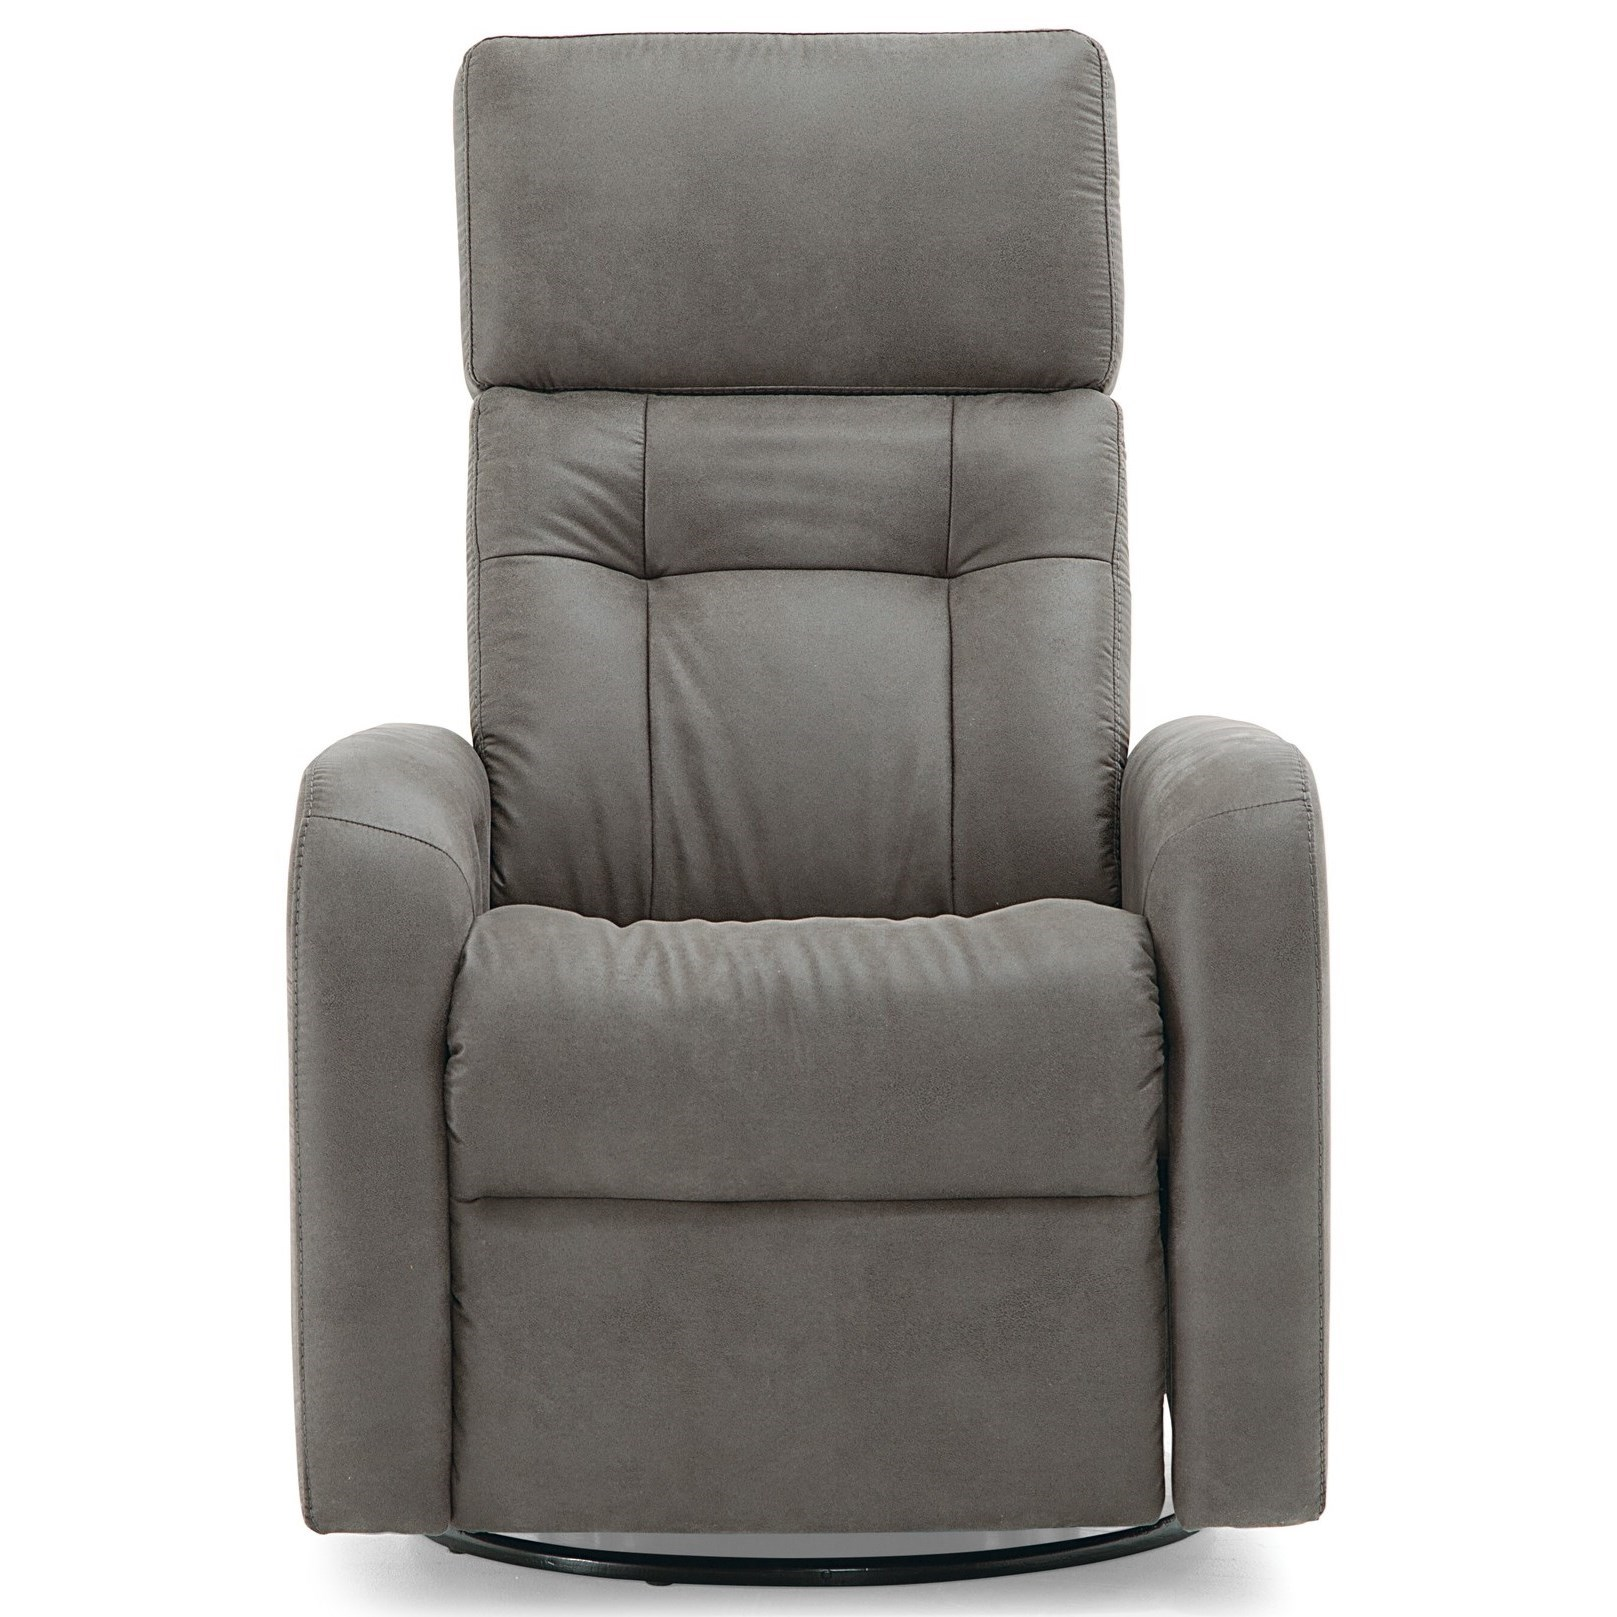 Sorrento Swivel Glider Power Recliner by Palliser at A1 Furniture & Mattress